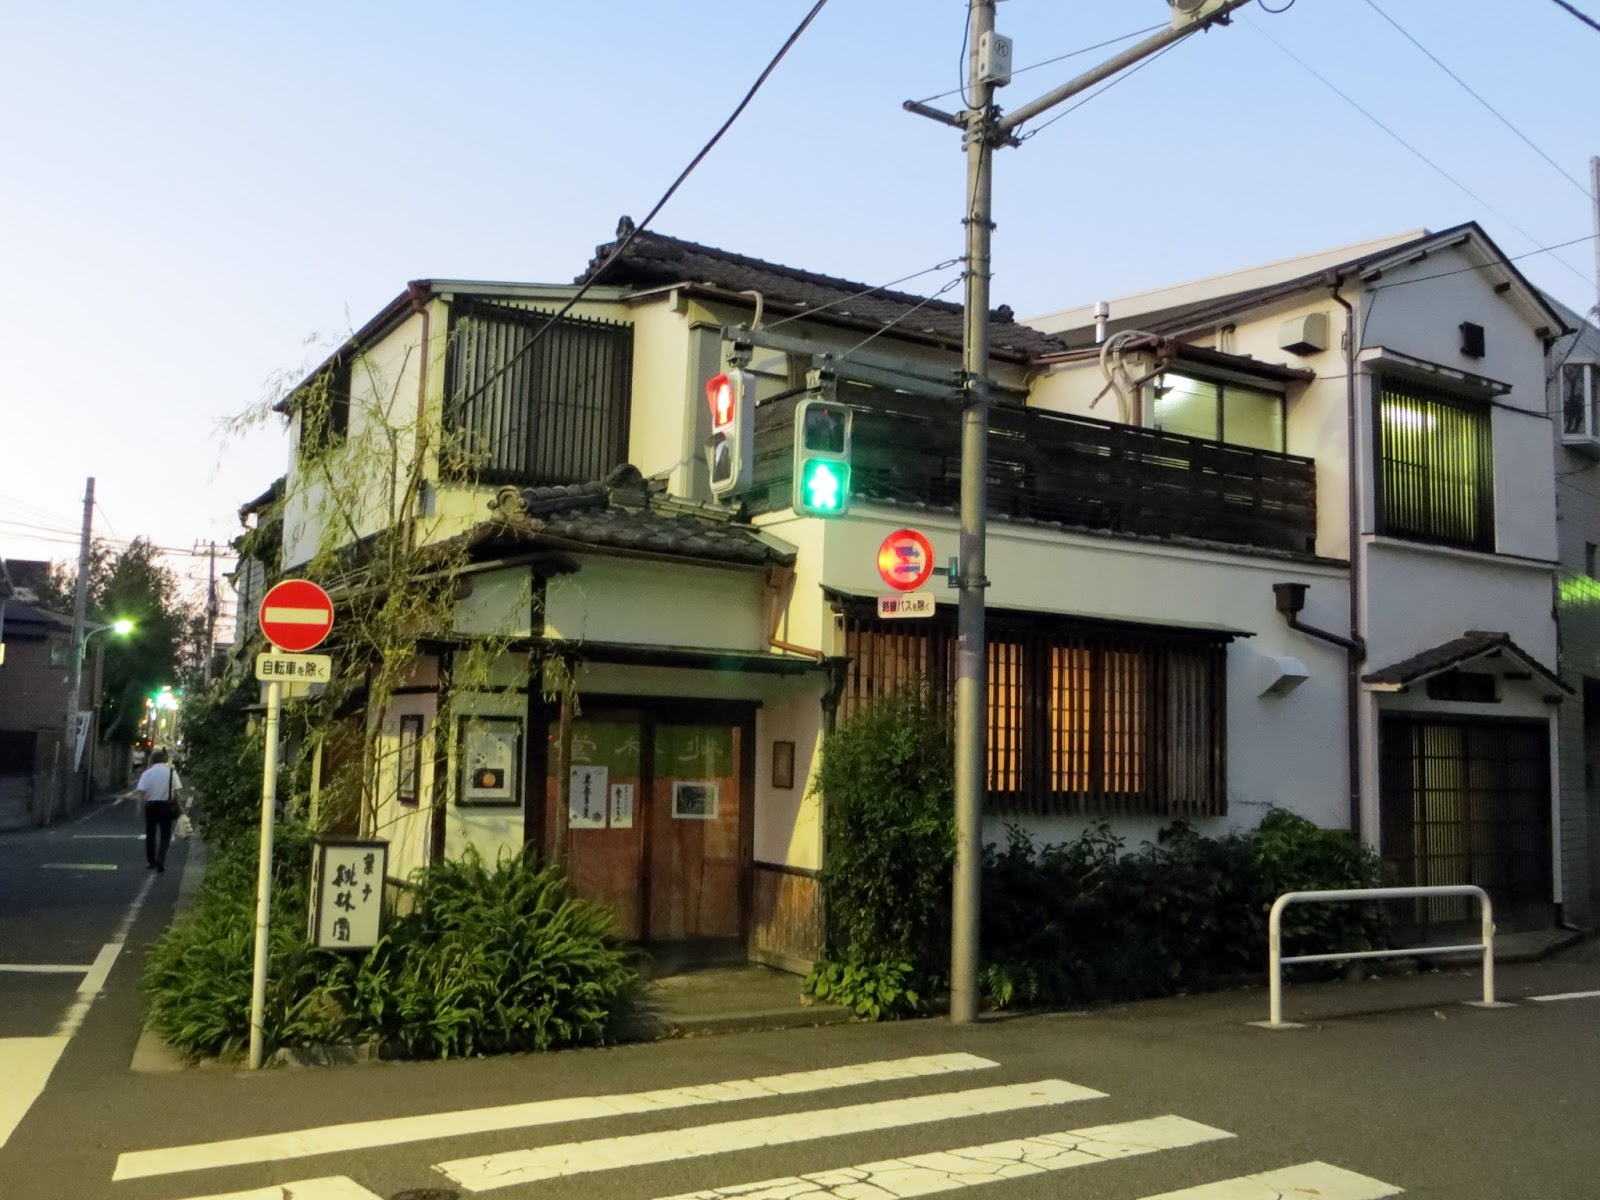 Japanese house, Alley way tokyo, streets japan, vending machines, must do tokyo, Japan